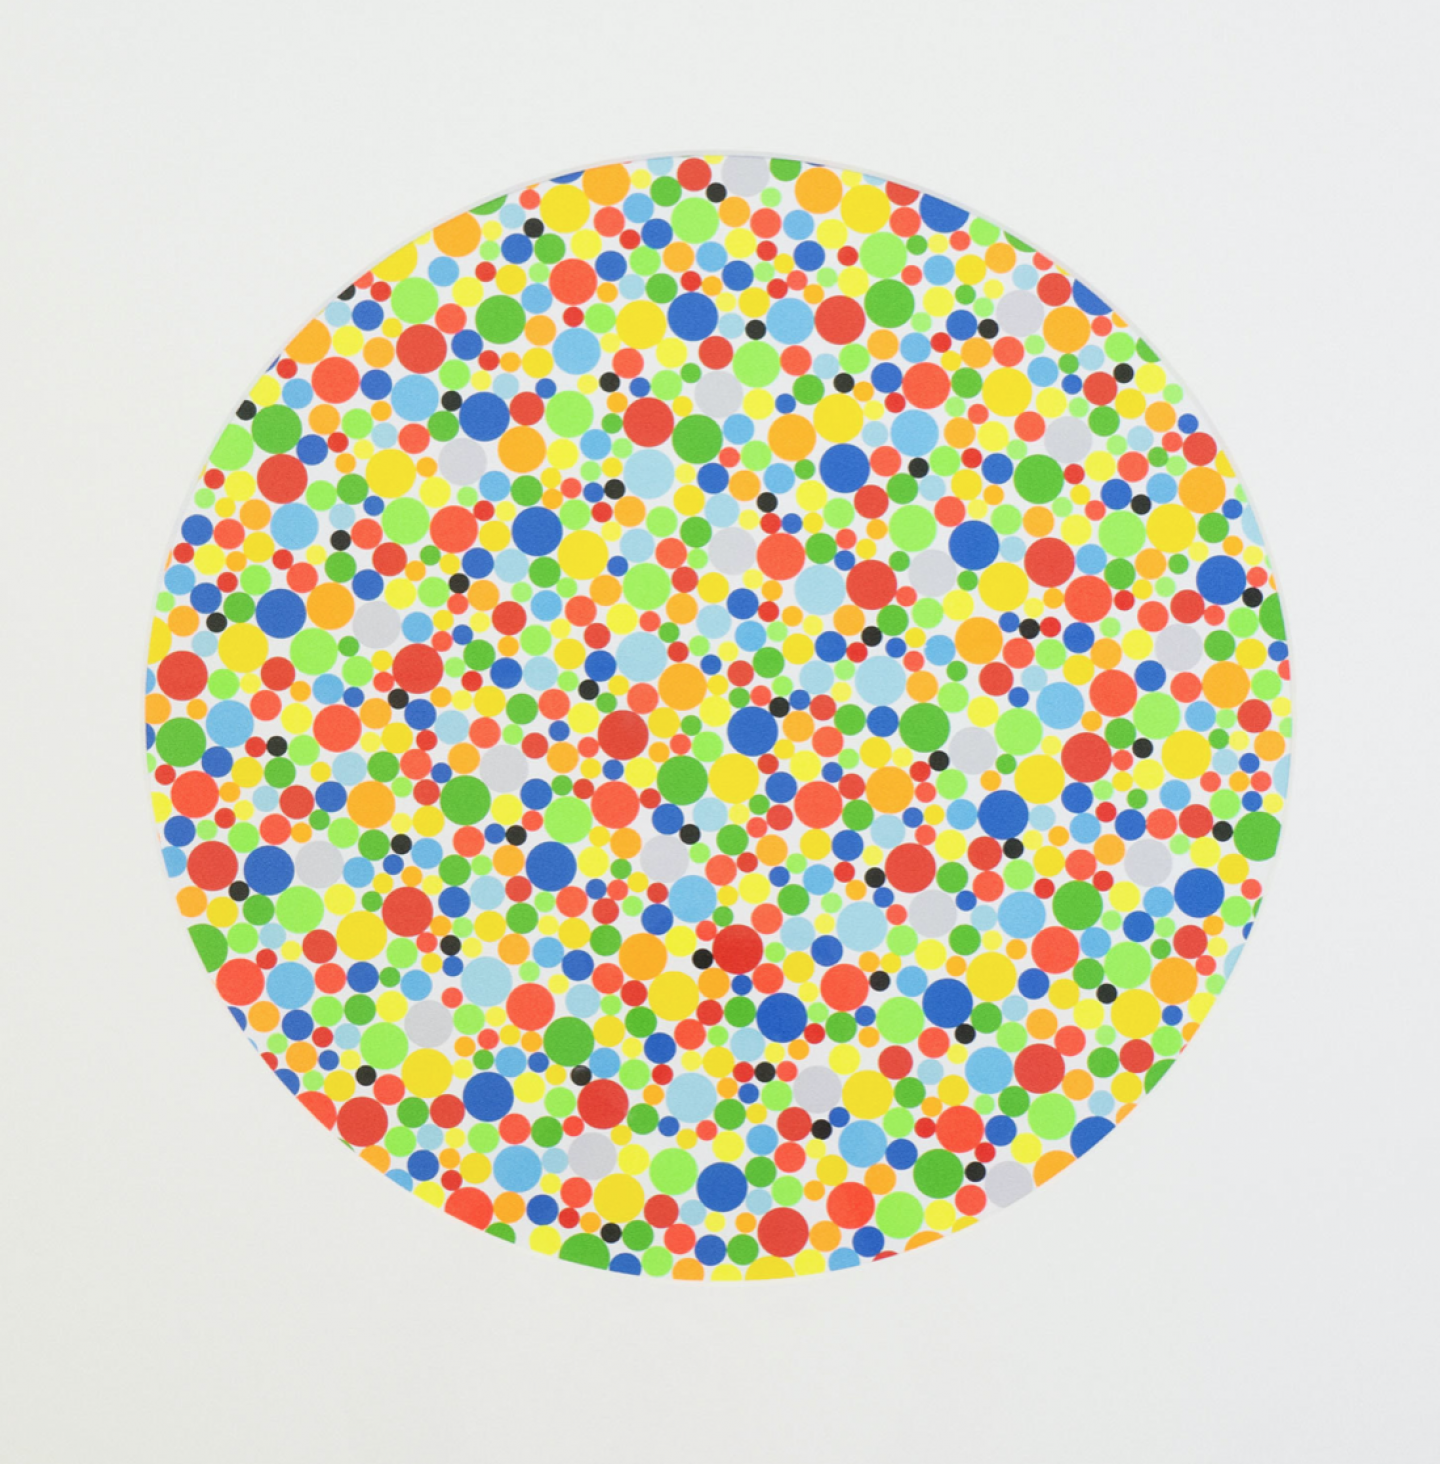 LIONEL ESTEVE Migraines, 2010 Coloured pastilles on paper 60 x 60 cm (23.6 x 23.6 inch) Edition of 14 / 15 Signed with edition number, Estimate: $2,350 - $2,700